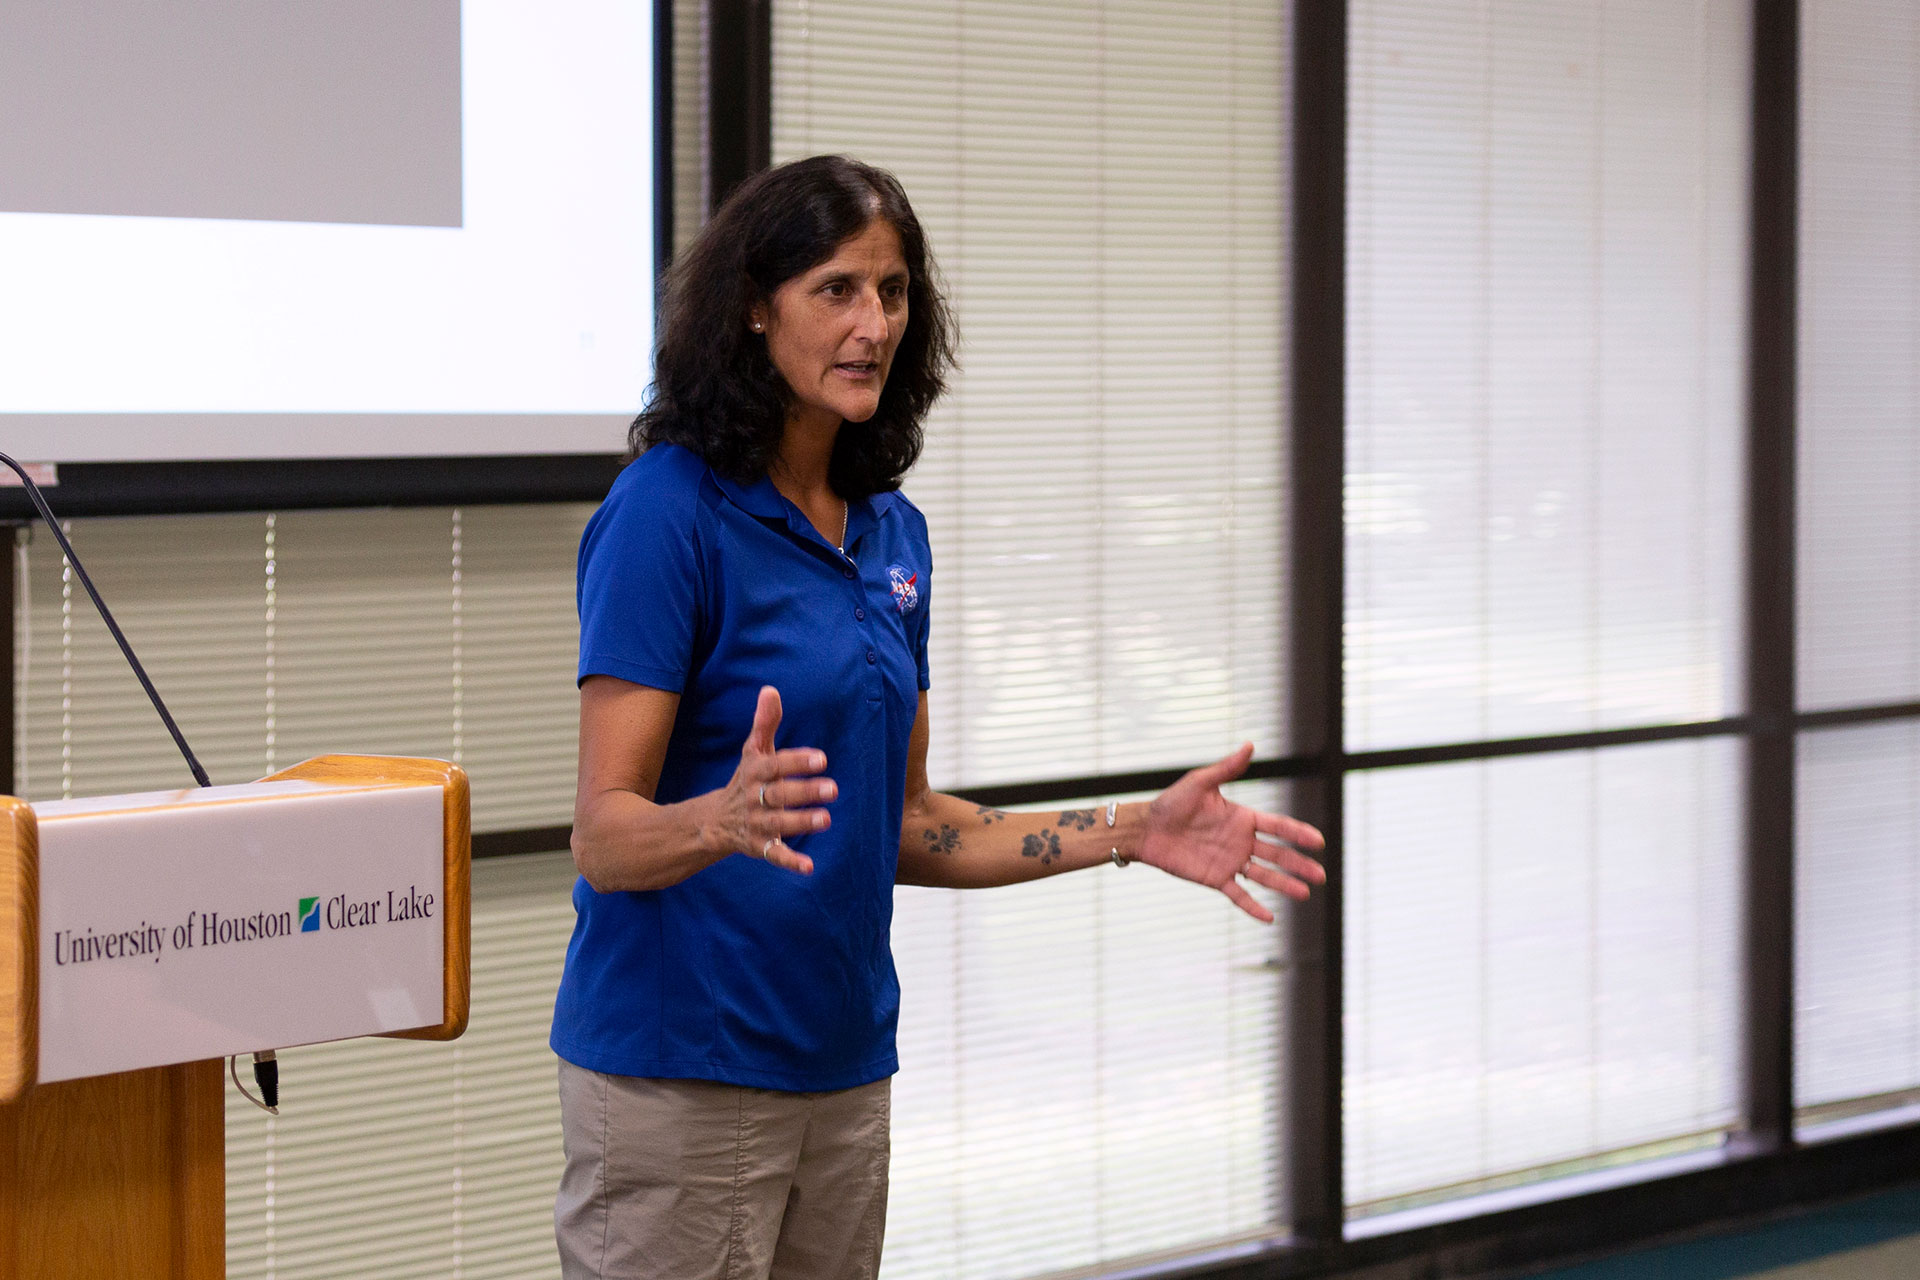 Astronaut Sunita L. Williams shares advice, experience with young students